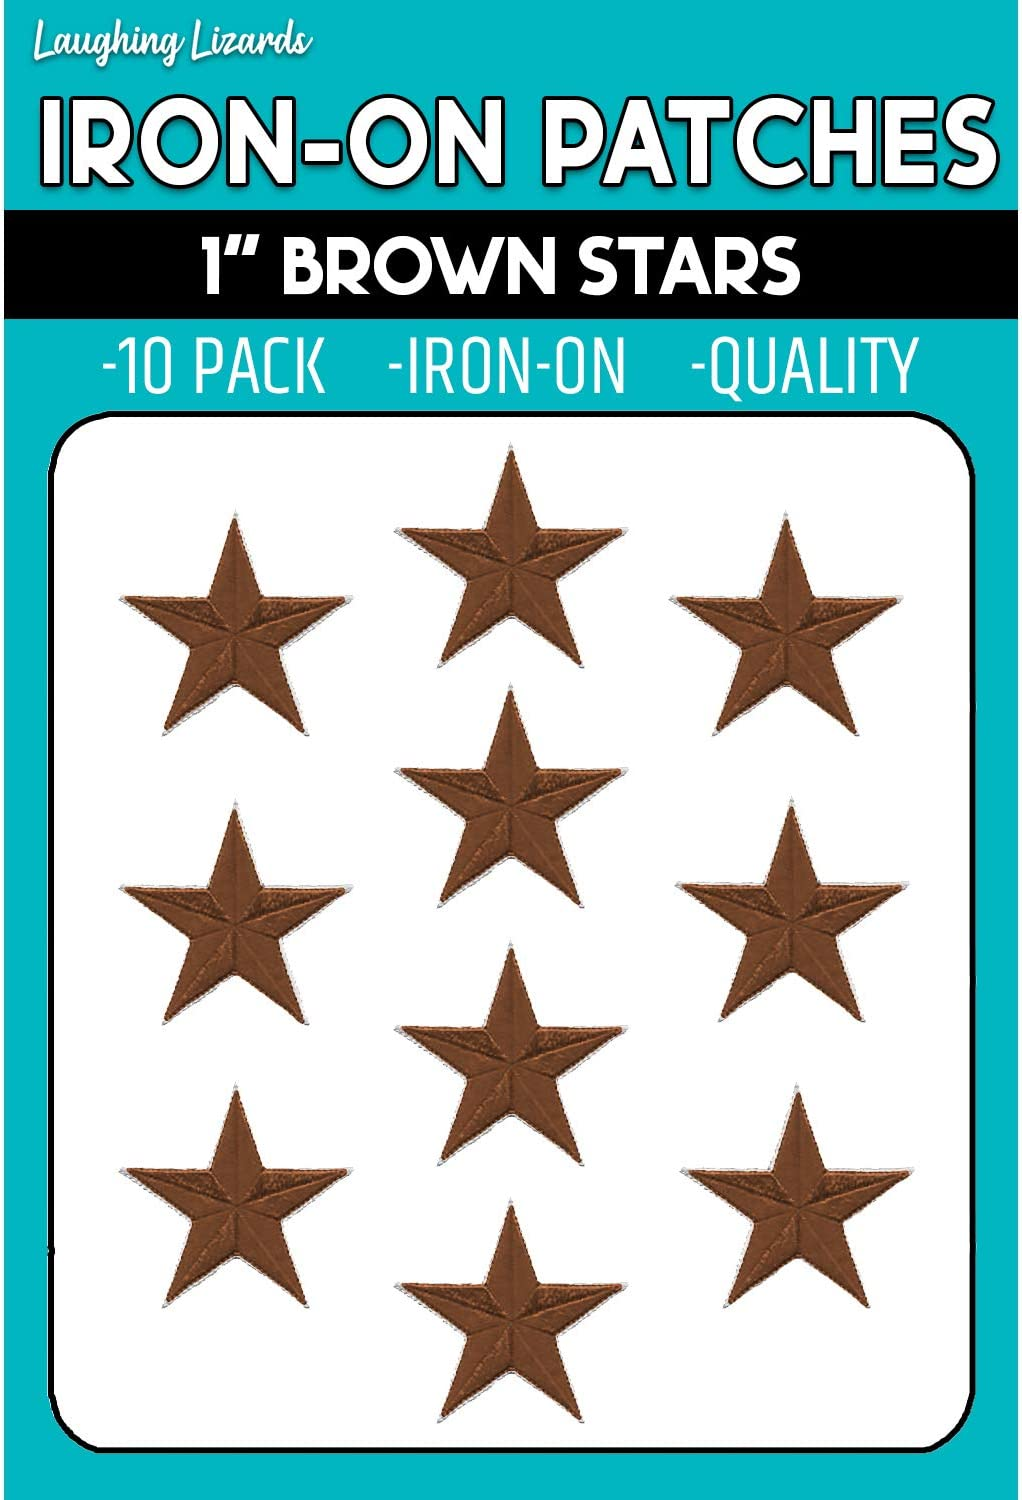 10 Pack of 1 Iron On Star Patches Embroidered Patch Applique Embellishments for Clothing Jackets Black Backpacks and Decorations